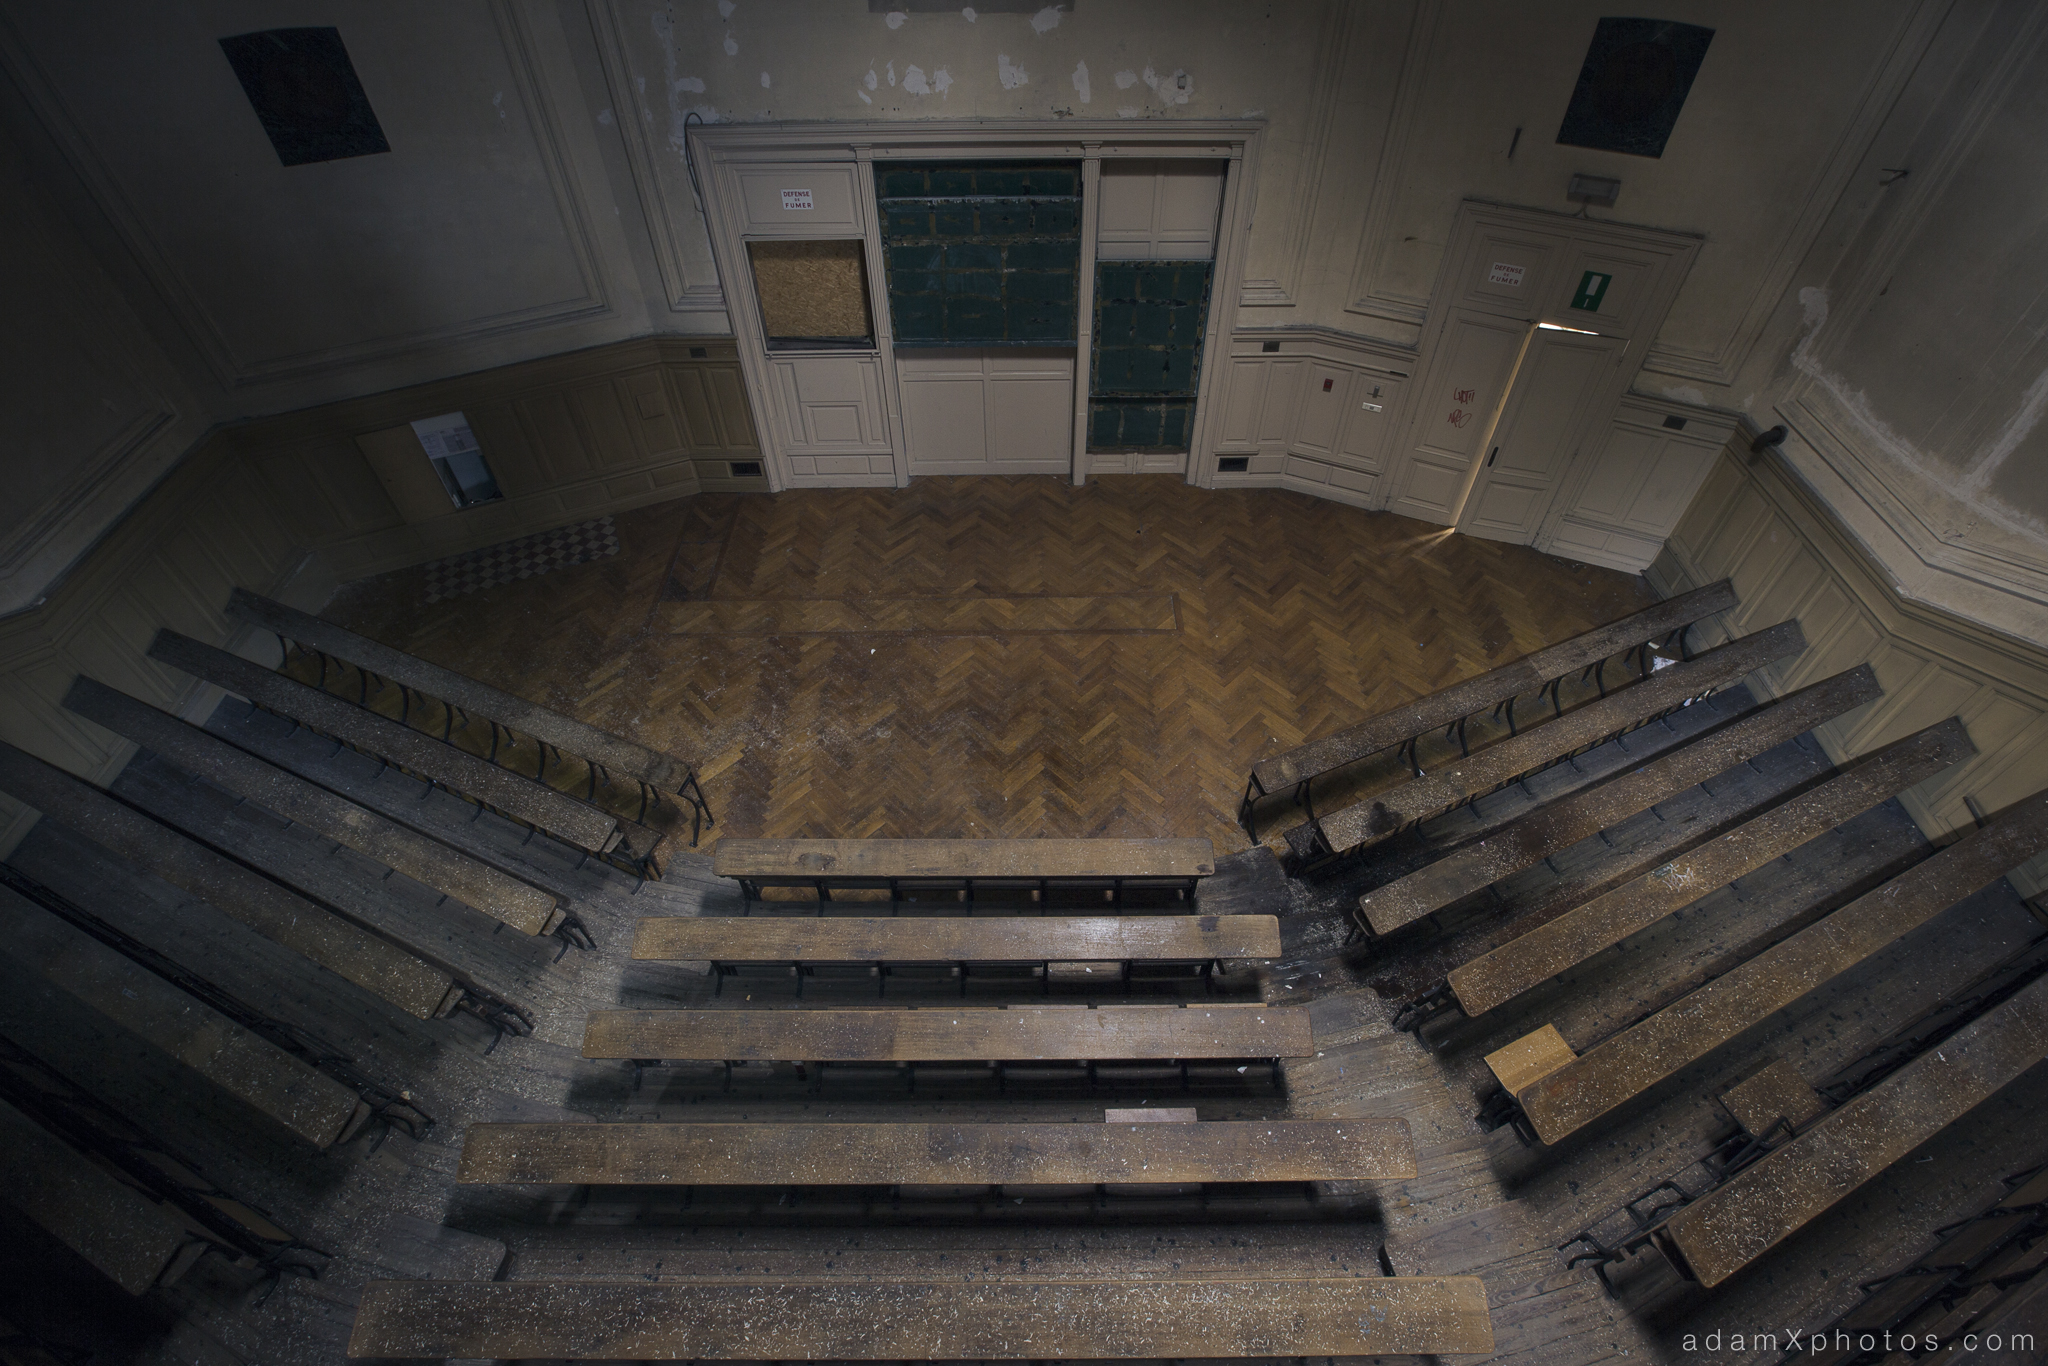 Main lecture theatre auditorium top view from above looking down Adam X Urbex UE Urban Exploration Belgium Pritzer Fac Pritzker Fac University College campus buildings abandoned derelict unused empty disused decay decayed decaying grimy grime